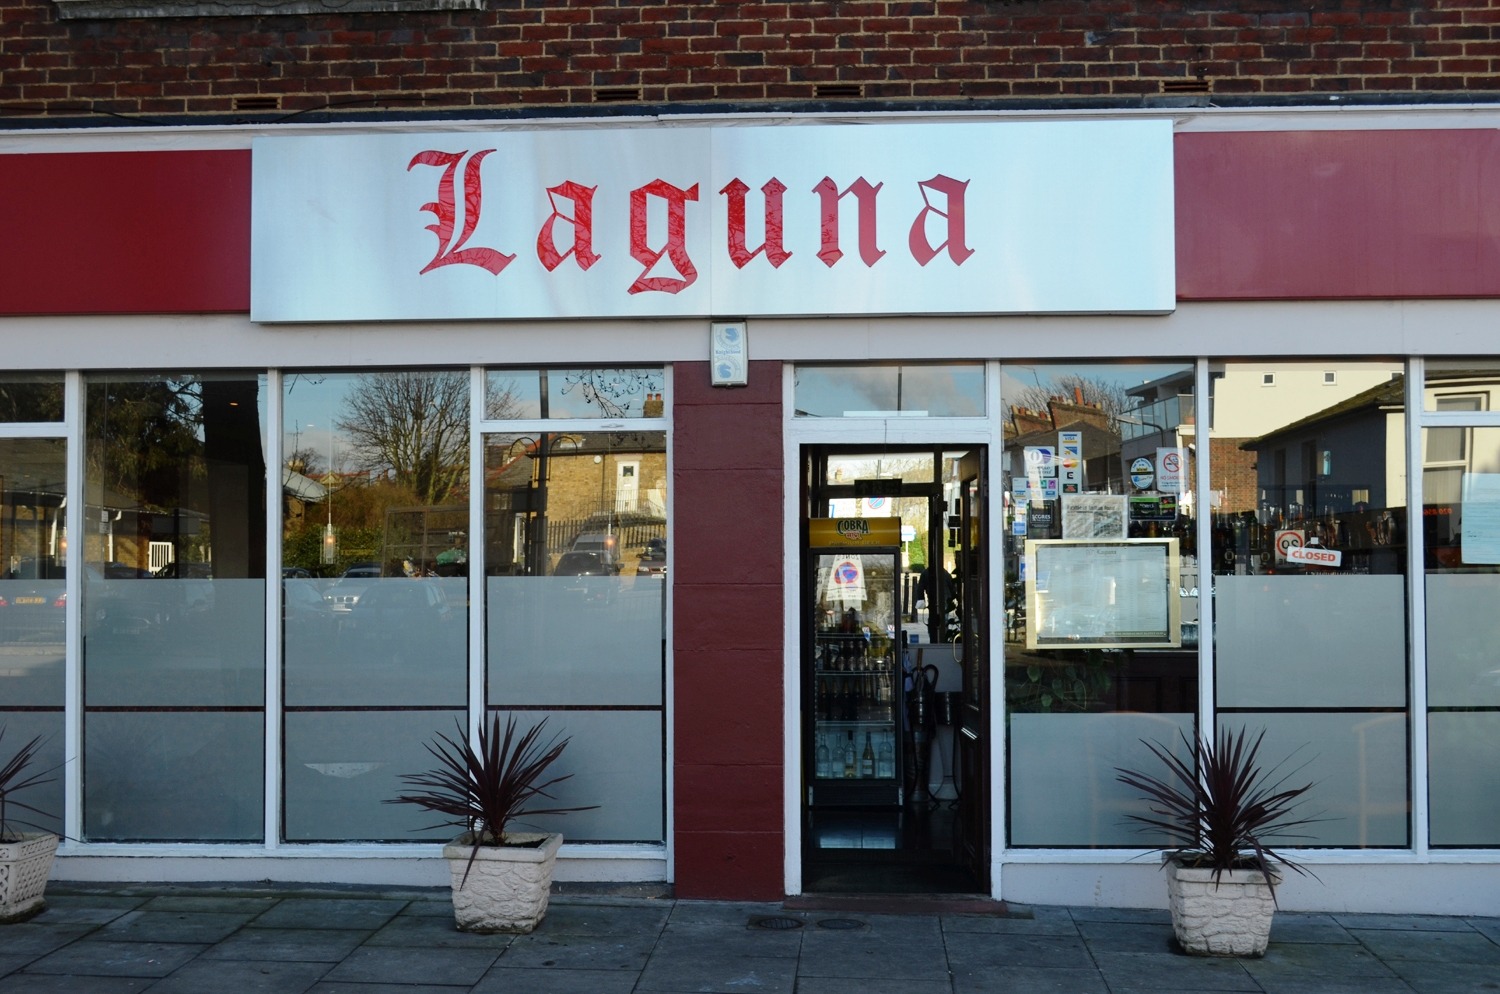 Reserve a table at Laguna Tandoori Restaurant